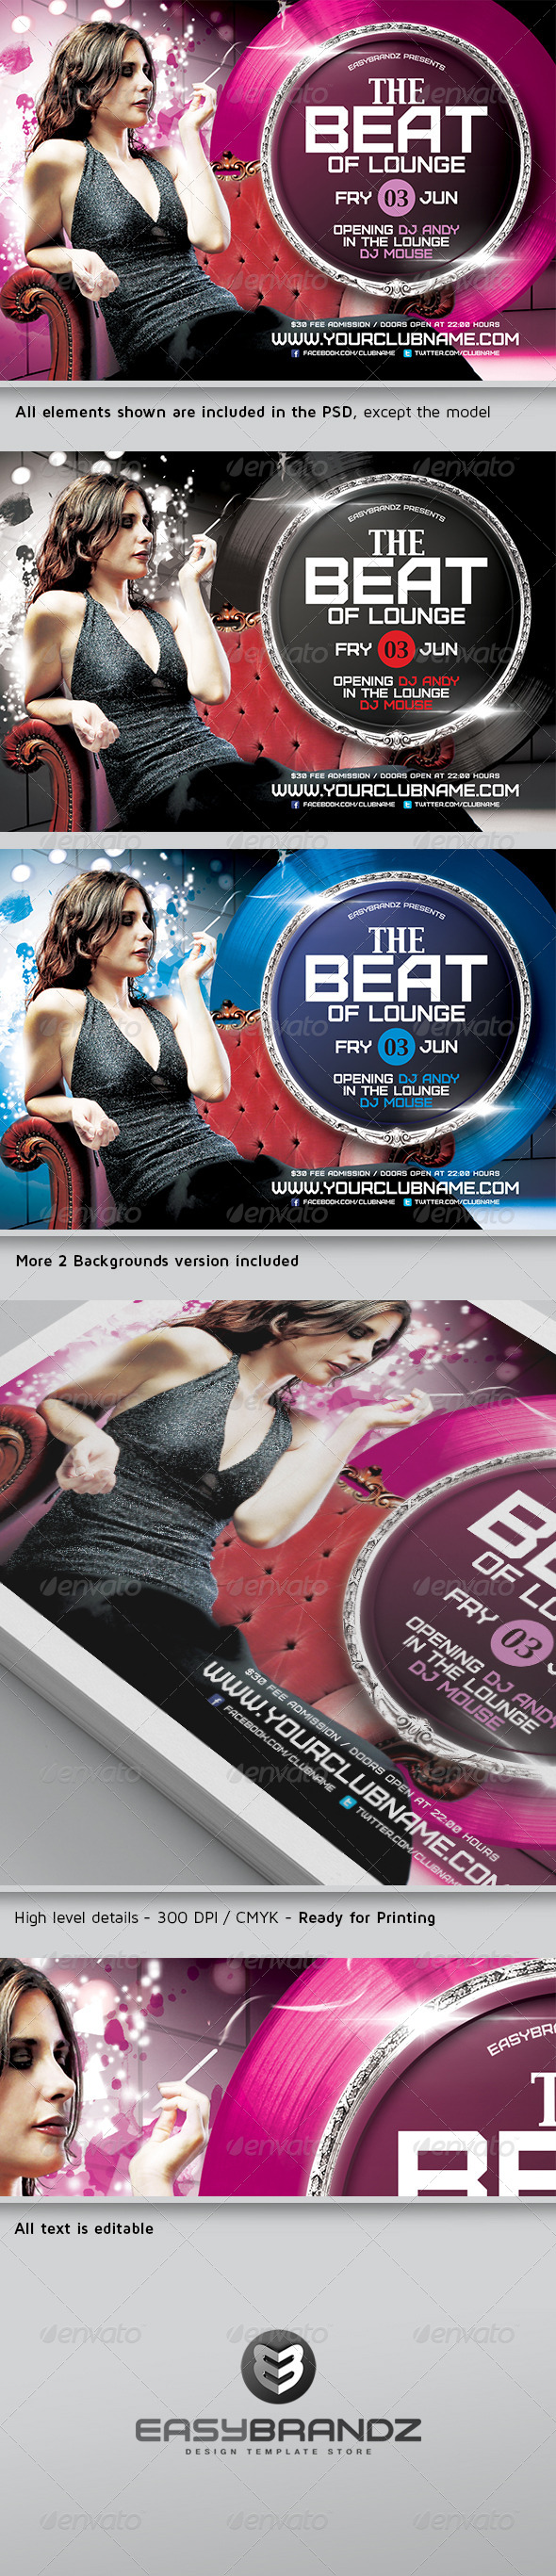 The Beat of Lounge Flyer Template - Events Flyers